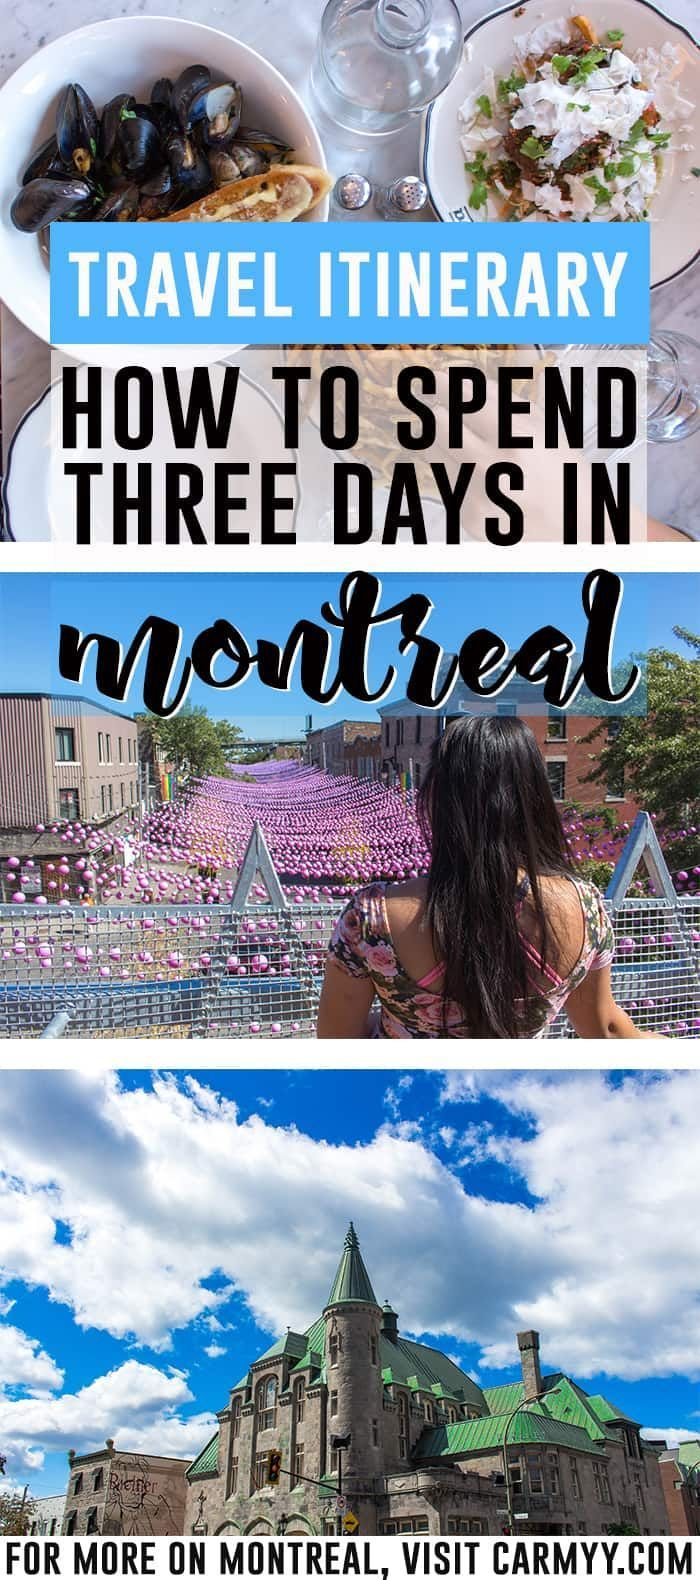 How to Spend 3 Days in Montreal, Quebec Long Weekend